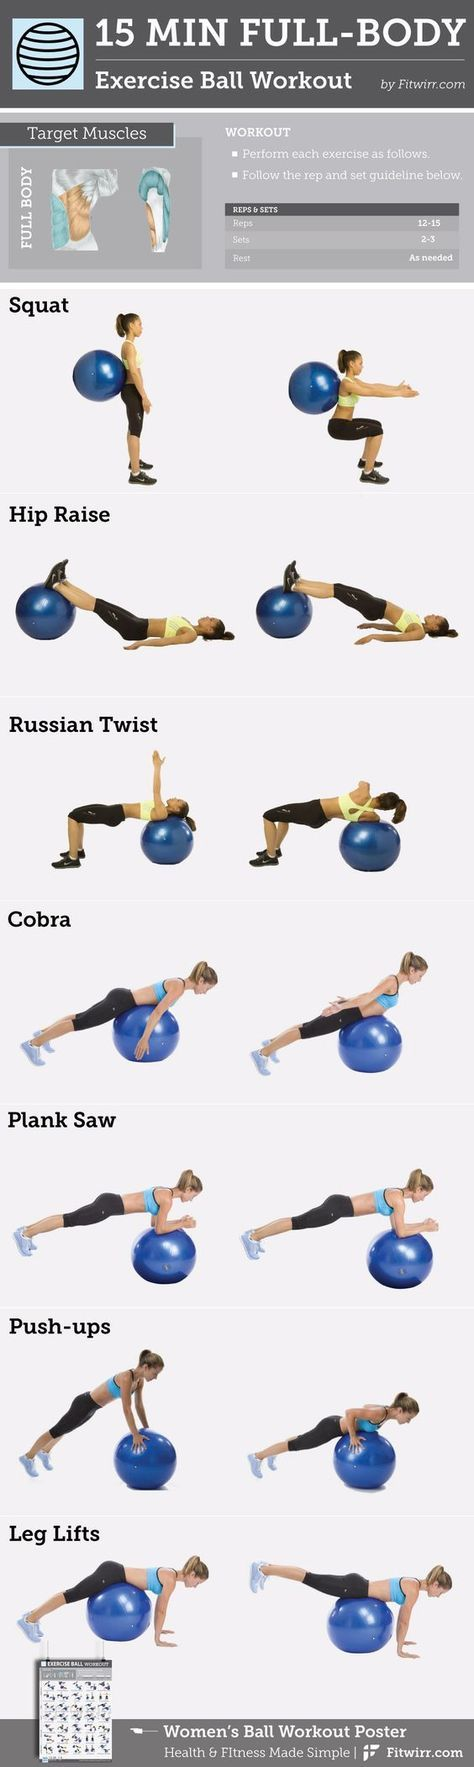 15-Minute Full-Body Exercise Ball -Workout content @ https://www.pinterest.com/dcindcmedia/